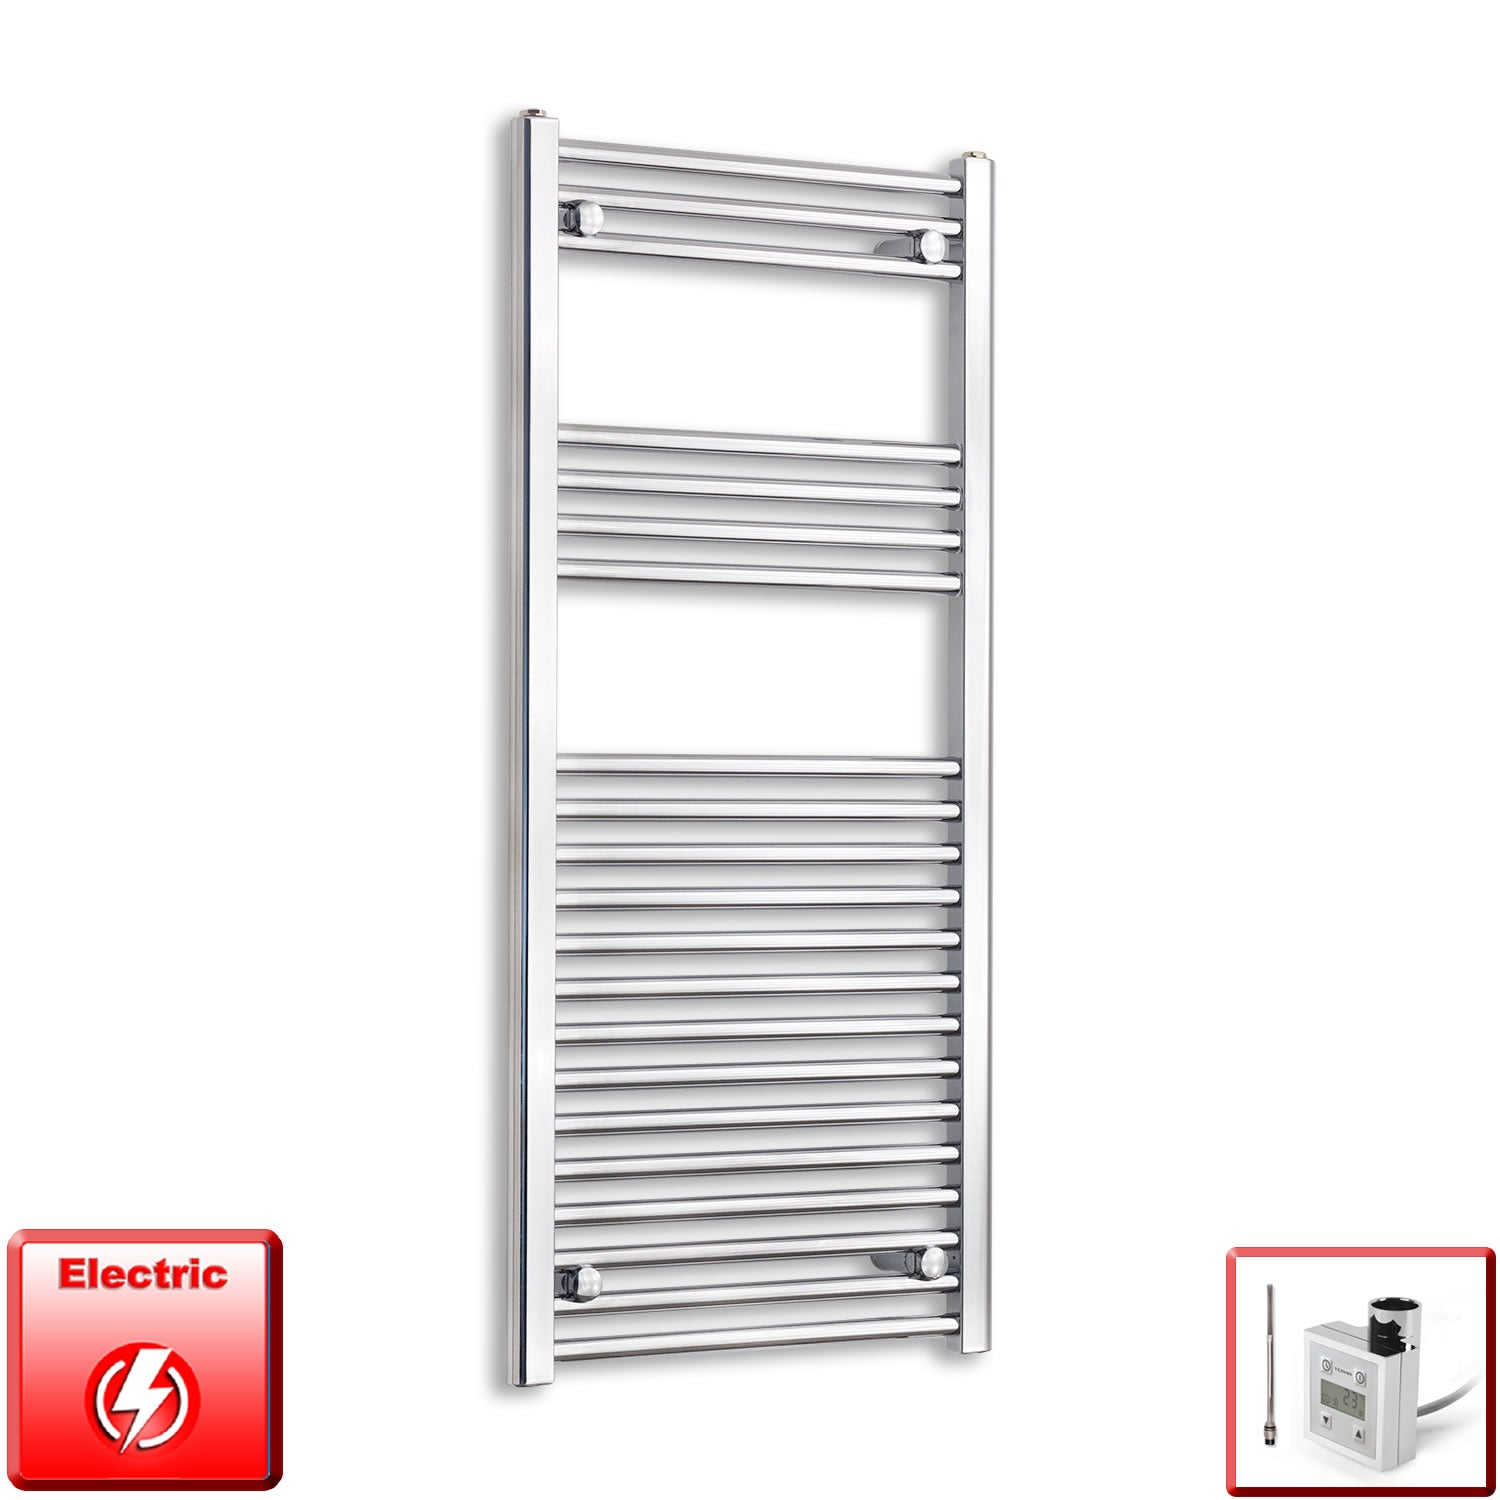 600mm Wide 1100mm High Pre-Filled Chrome Electric Towel Rail Radiator With Thermostatic KTX3 Element